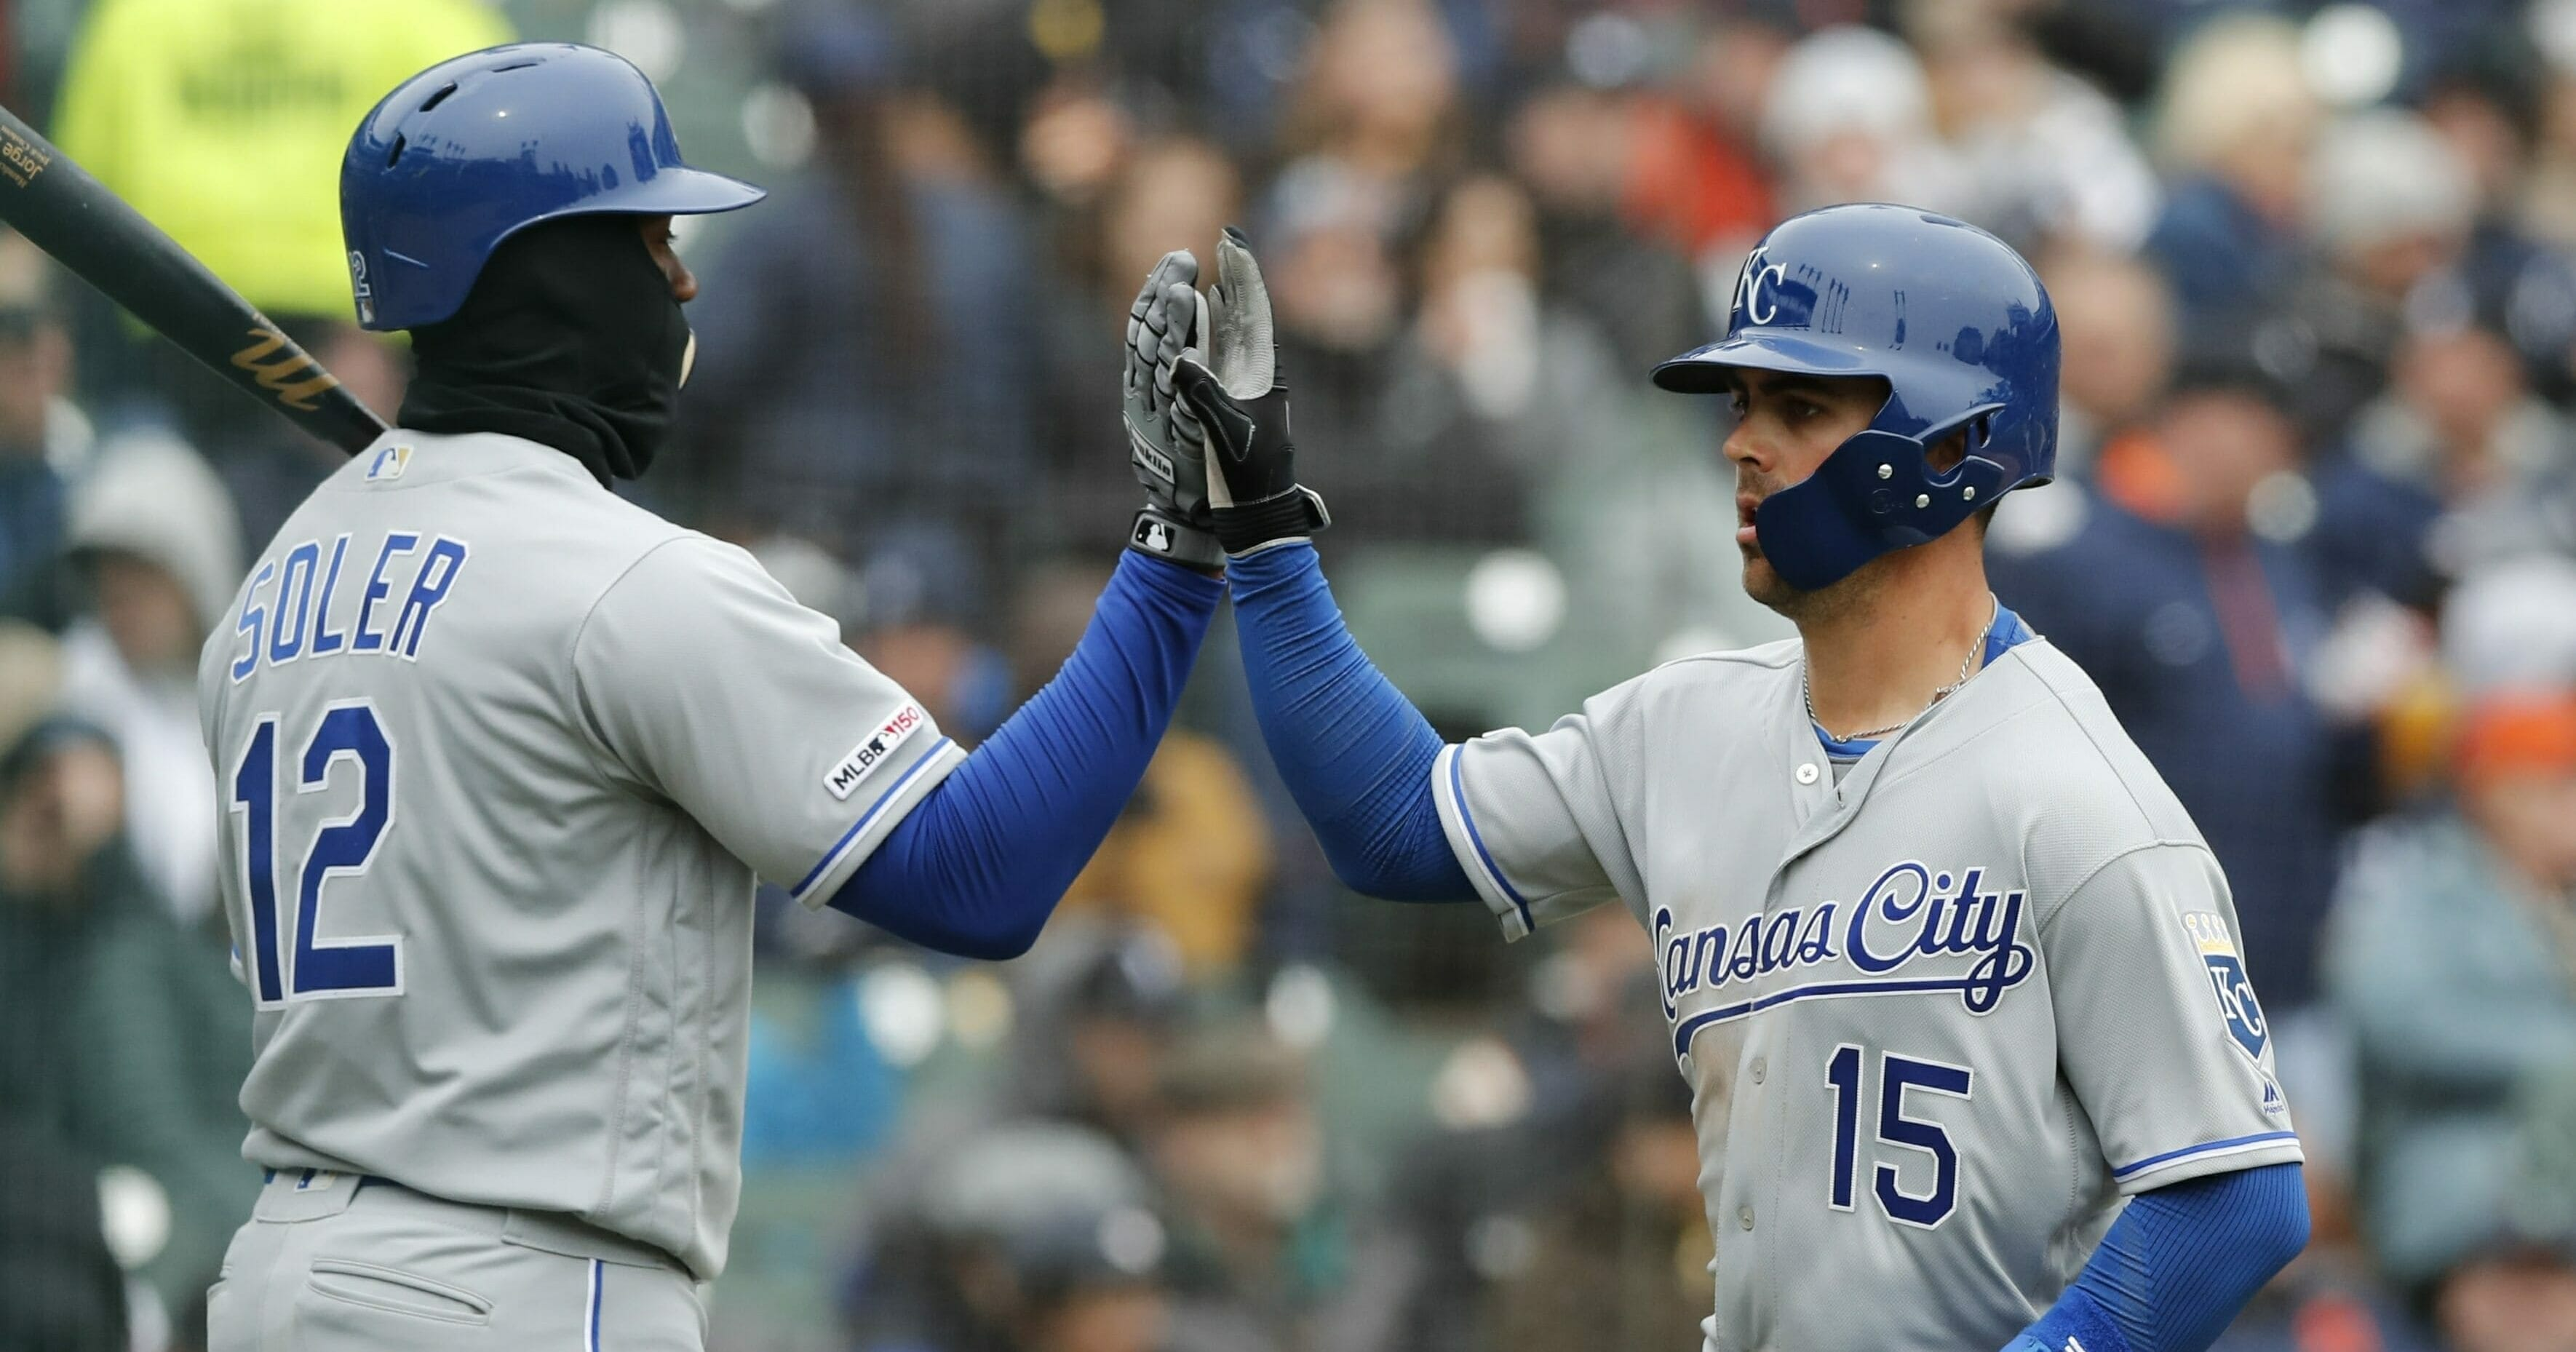 Kansas City Royals' Whit Merrifield scores on a sacrifice fly to left by teammate Alex Gordon during the fifth inning of a baseball game against the Detroit Tigers, Thursday, April 4, 2019, in Detroit.